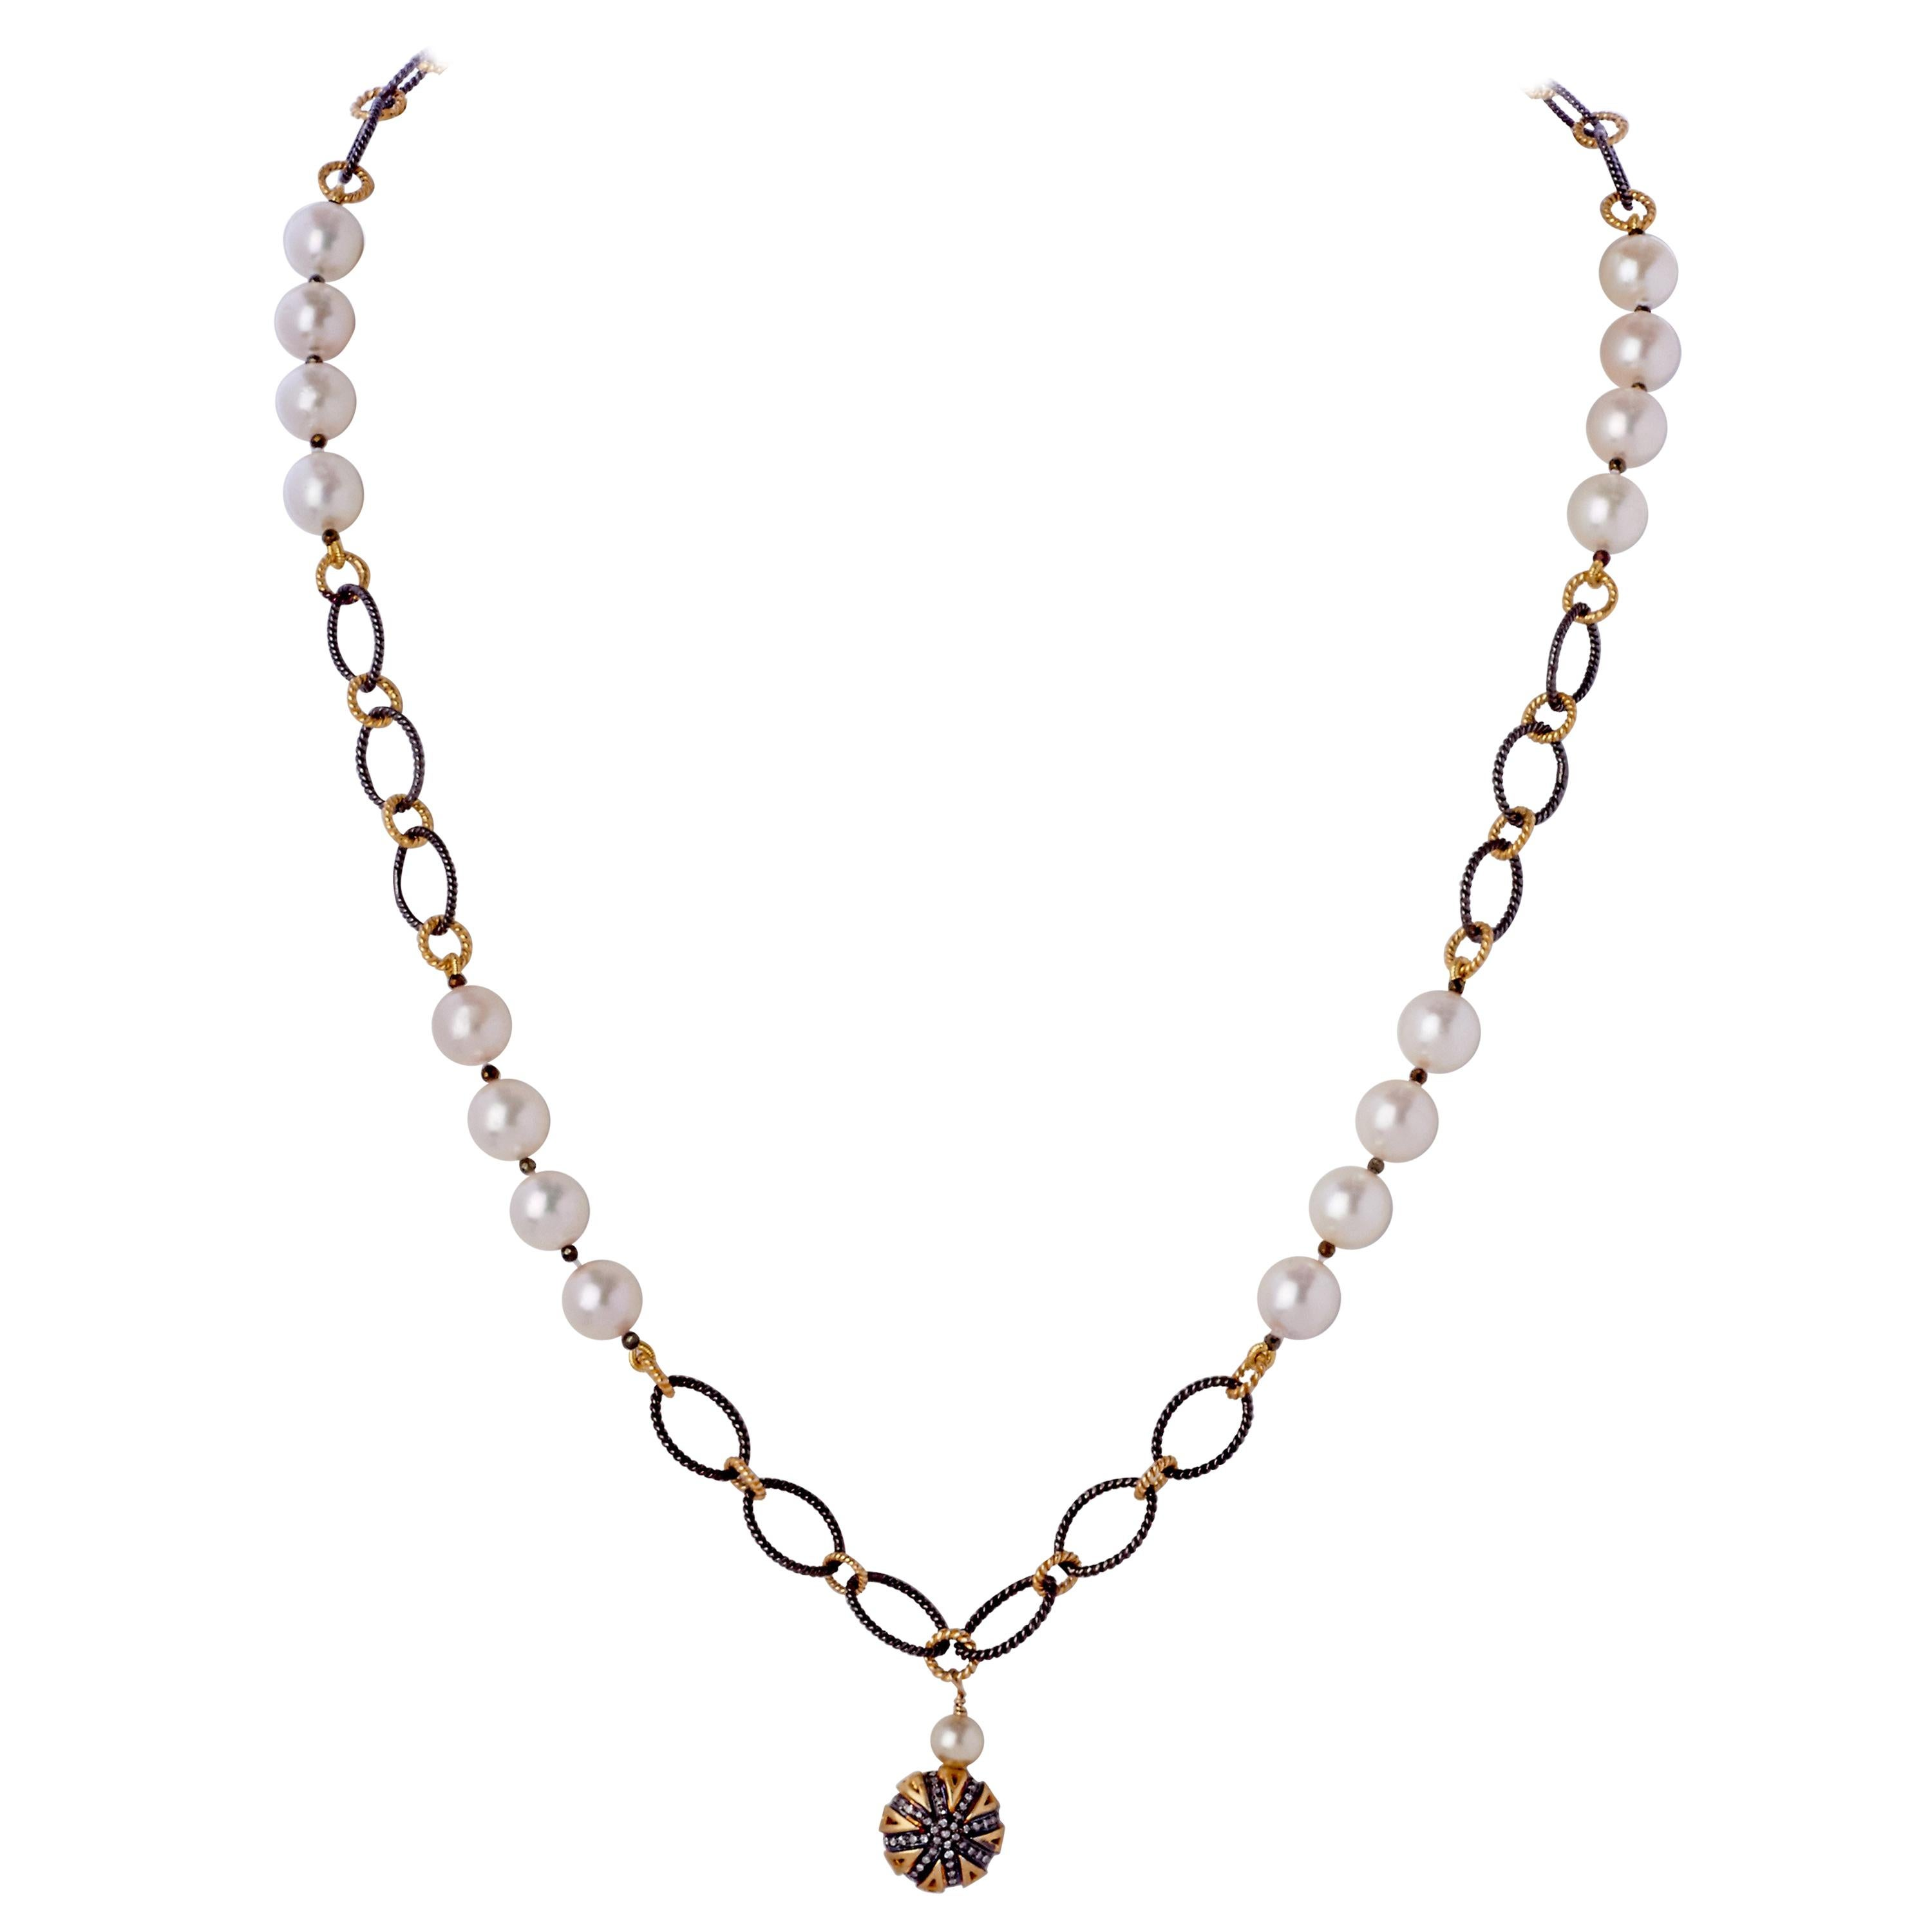 Diamond Sterling Puff Charm Pendant Necklace w Pearl & Silver Chain